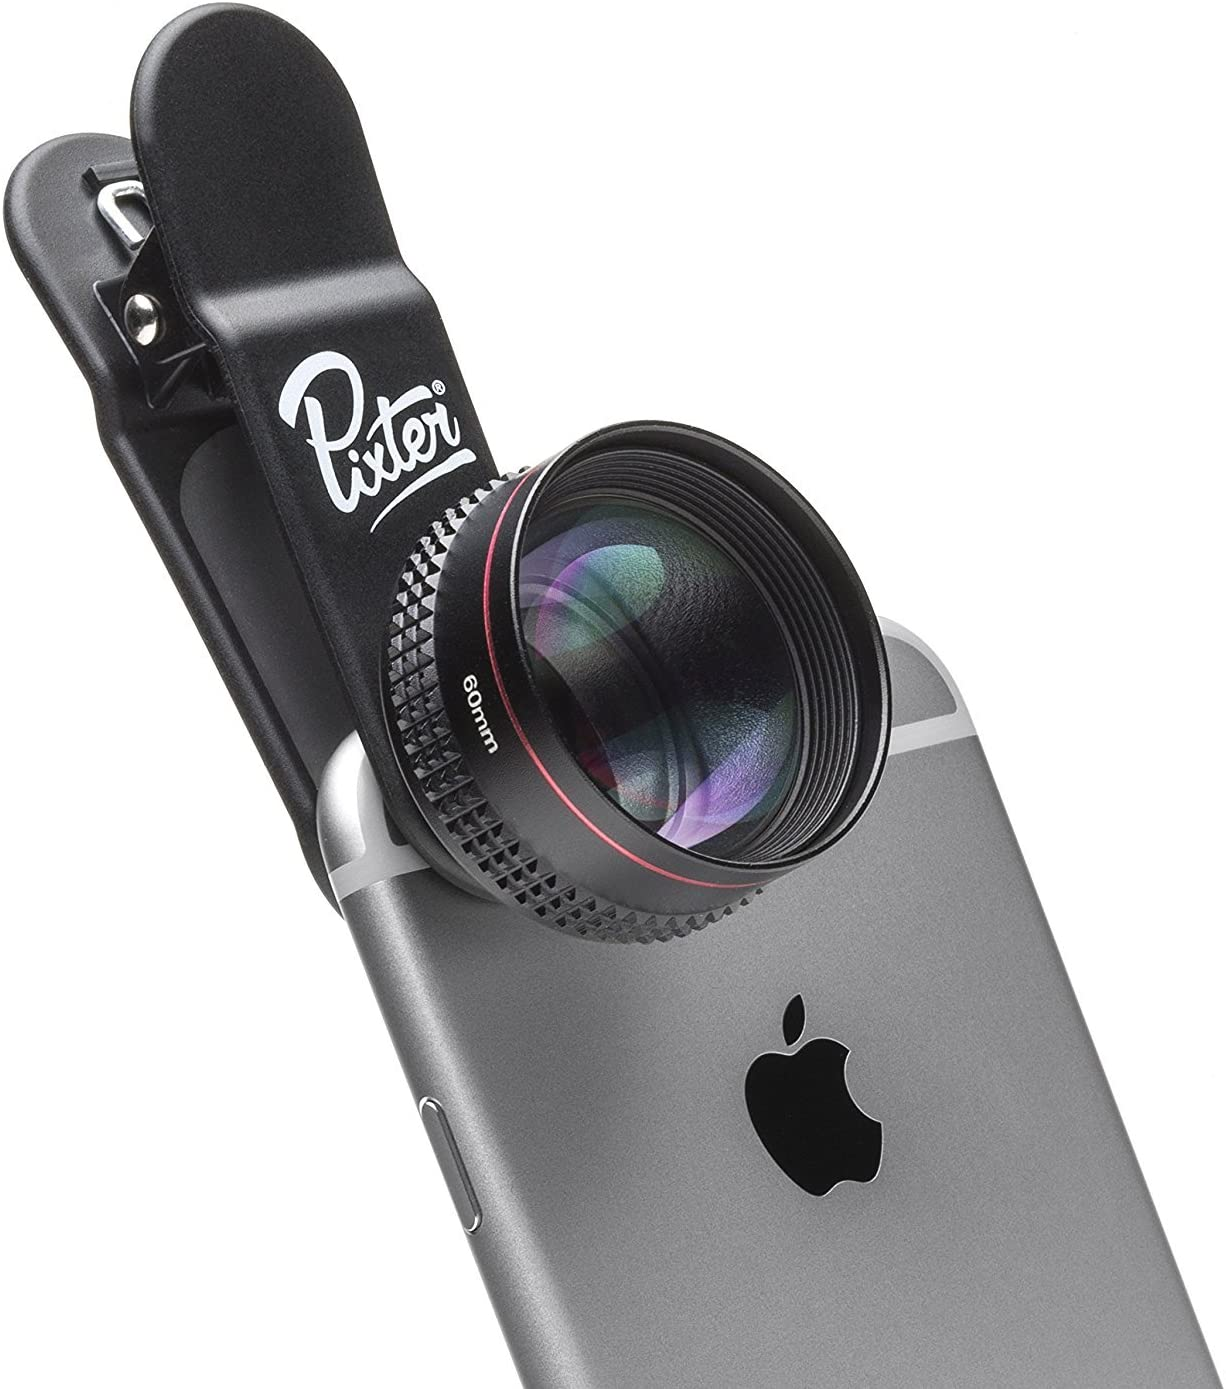 Pixter Objetivo Photo para Smartphone – Telephoto: Amazon.es ...